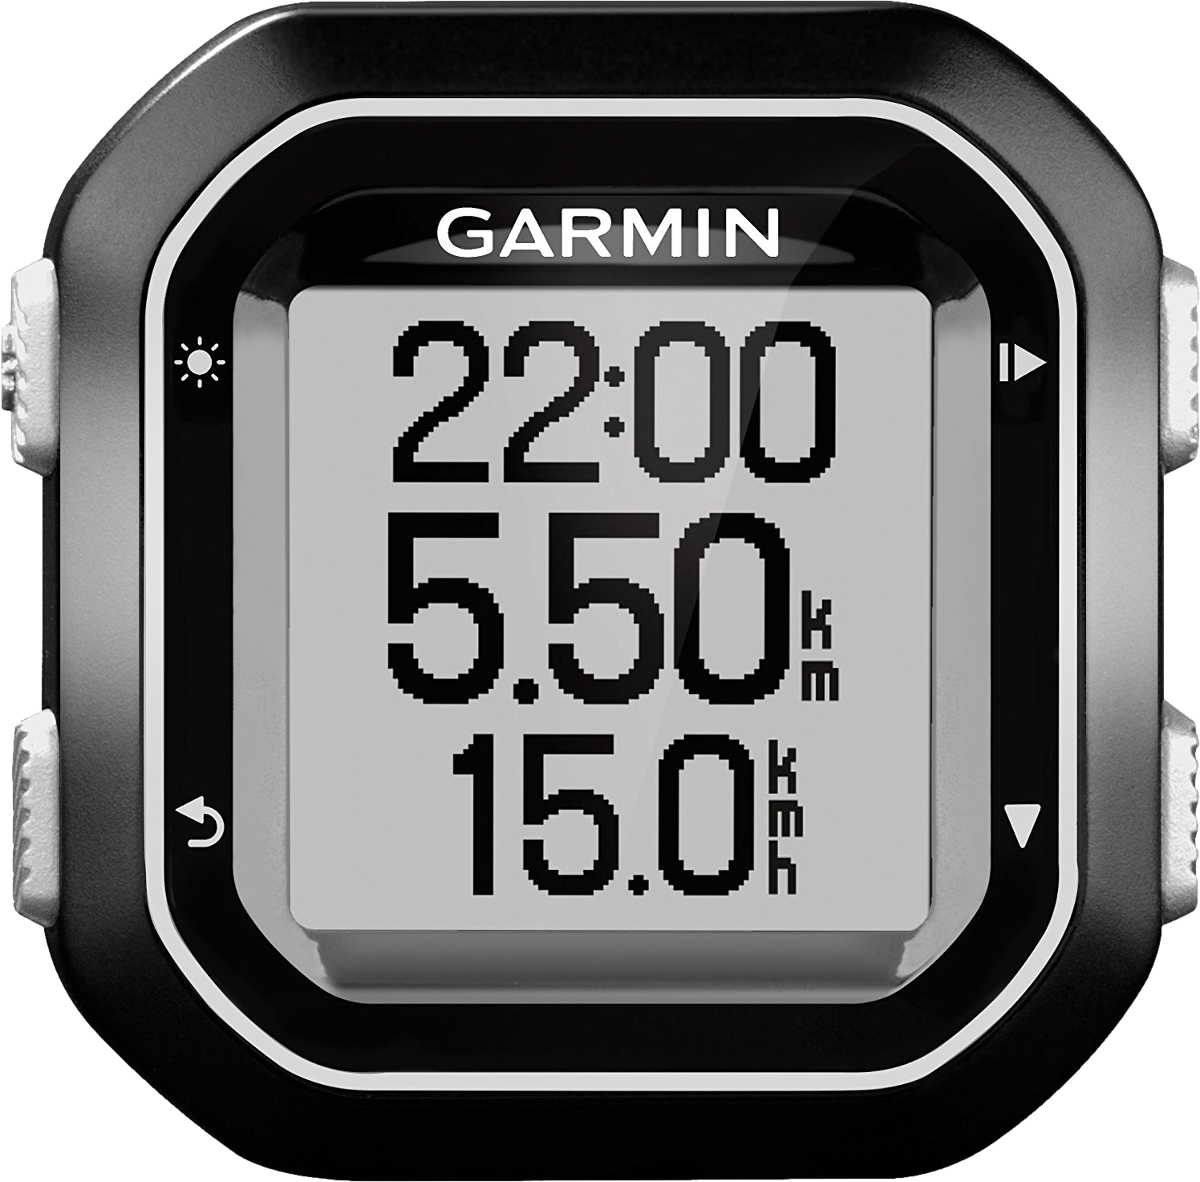 garmin edge 25 gps fahrrad computer mit ant und. Black Bedroom Furniture Sets. Home Design Ideas